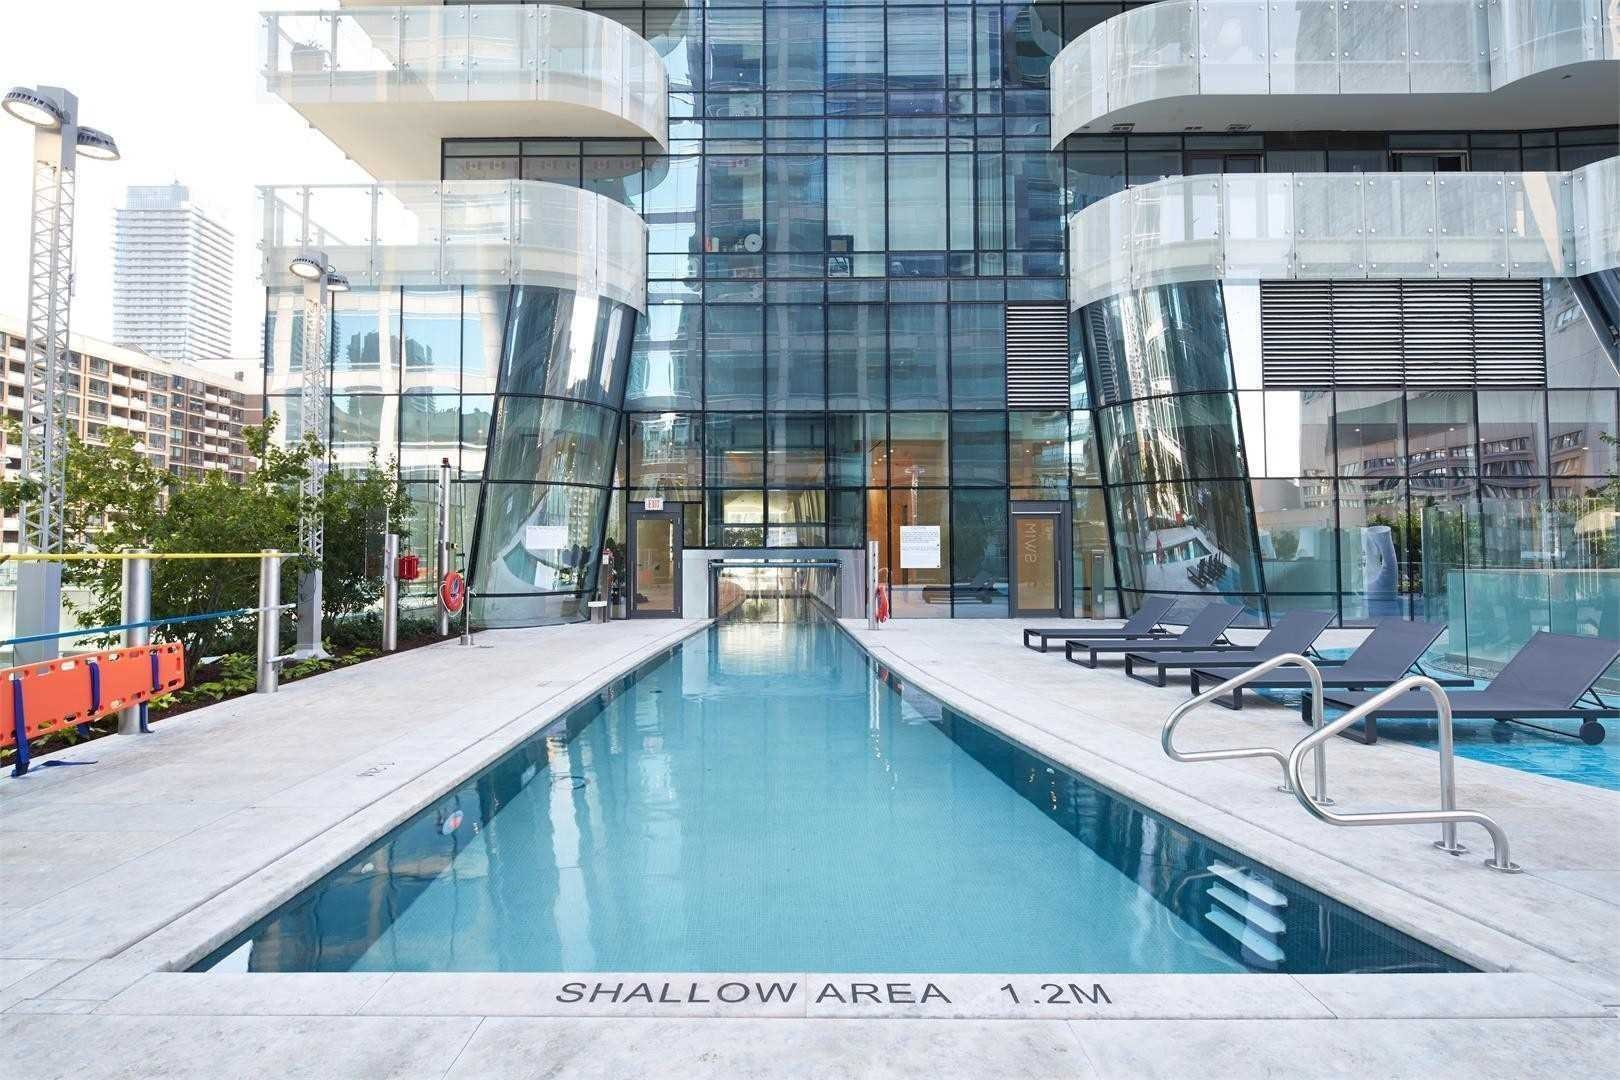 1 Bloor St E condo large swimming pool with lounge seating amenity.